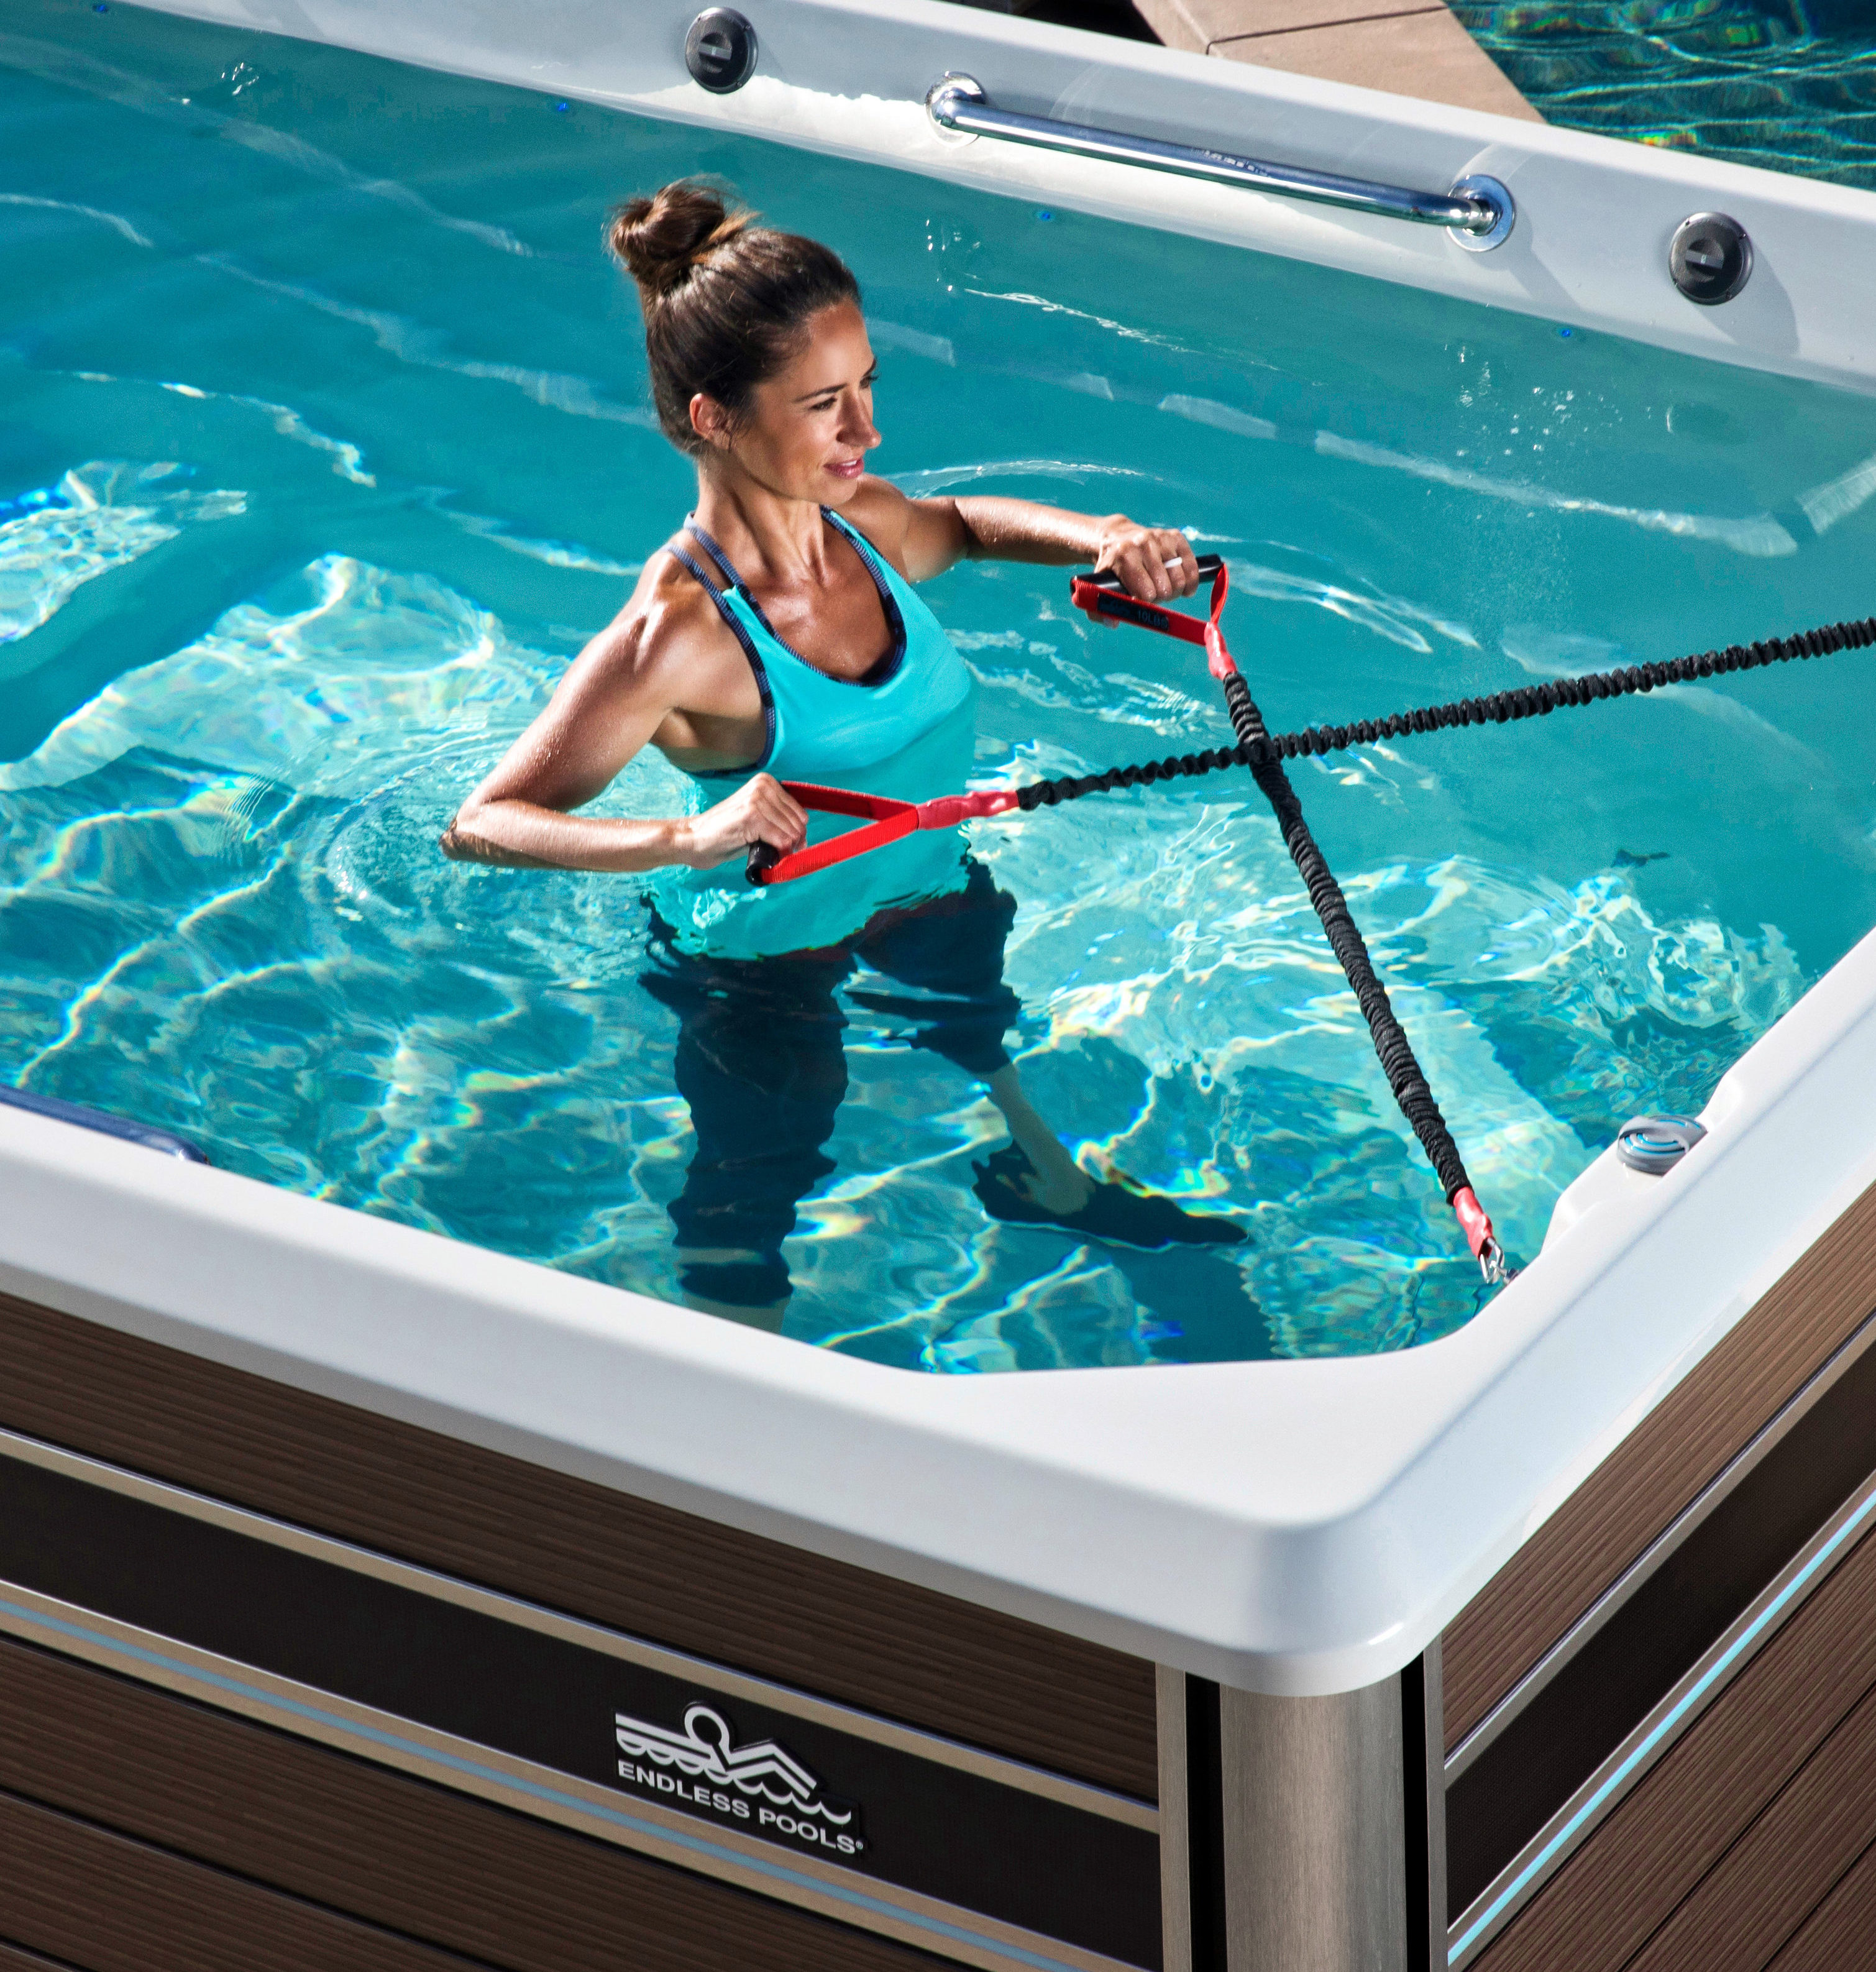 Endless Pools Accessories Add Variety to your Aquatic ...